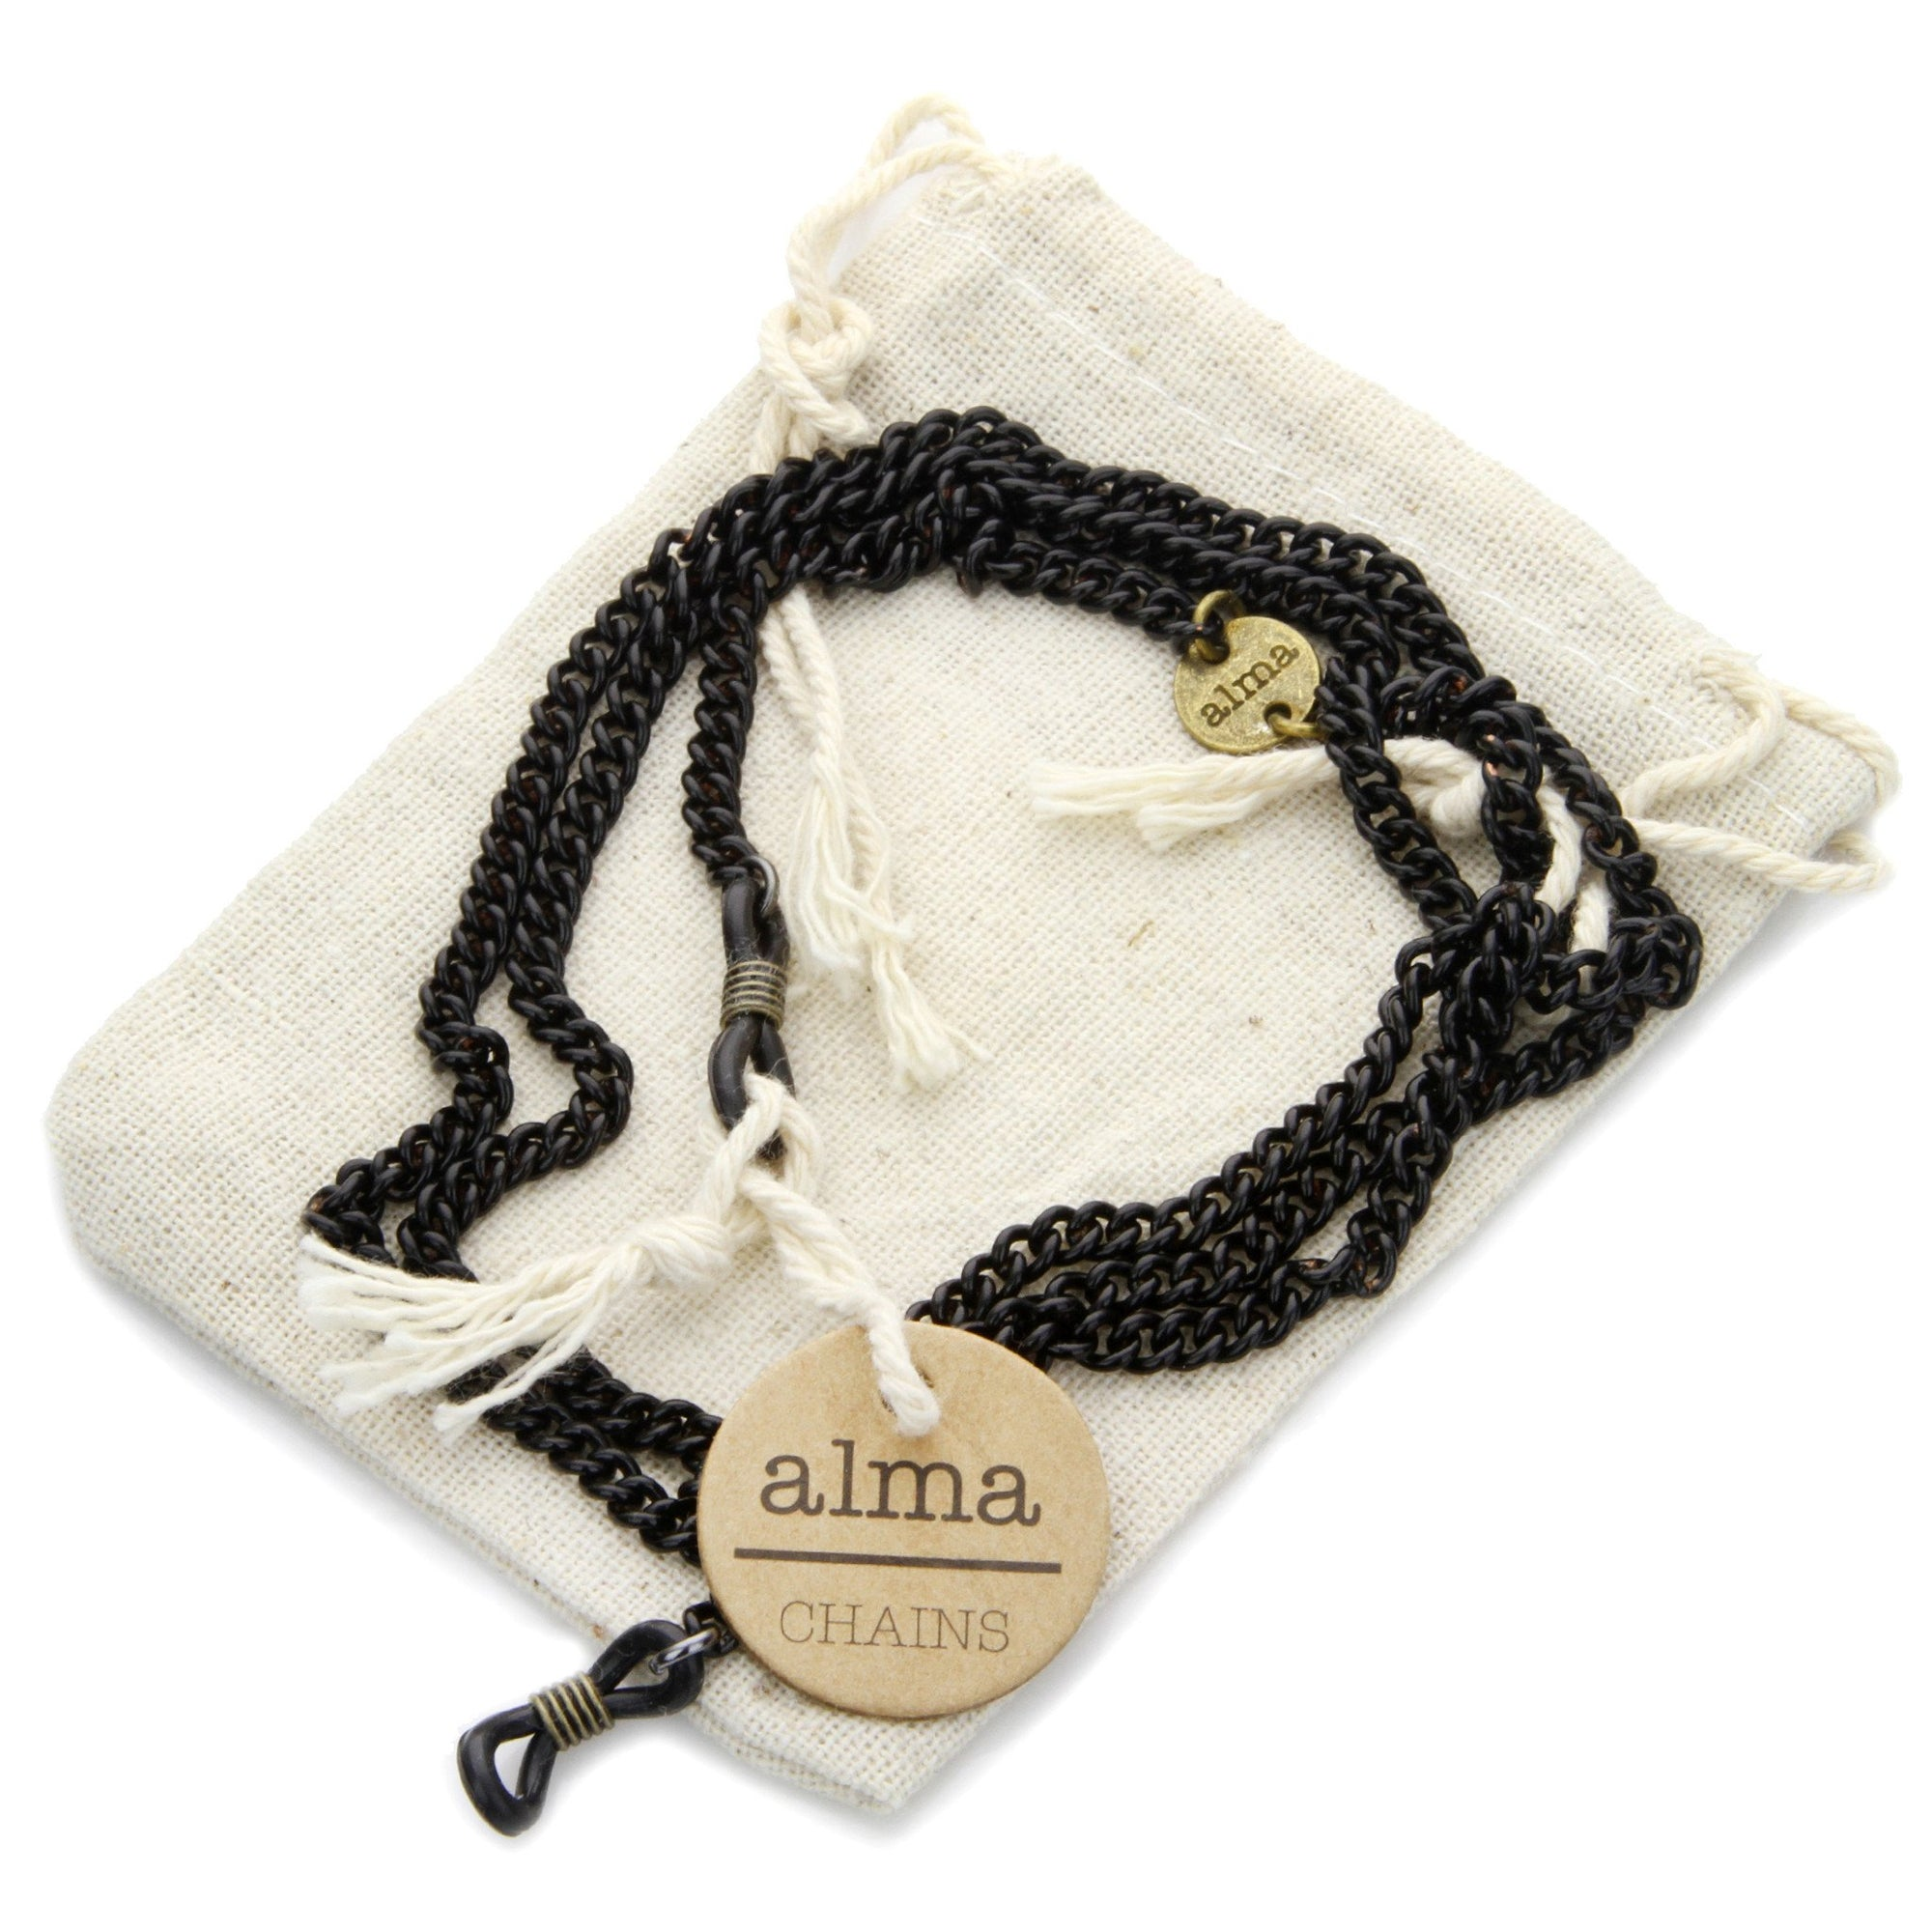 Alma Chains Eyewear Accessory Chain - Derek